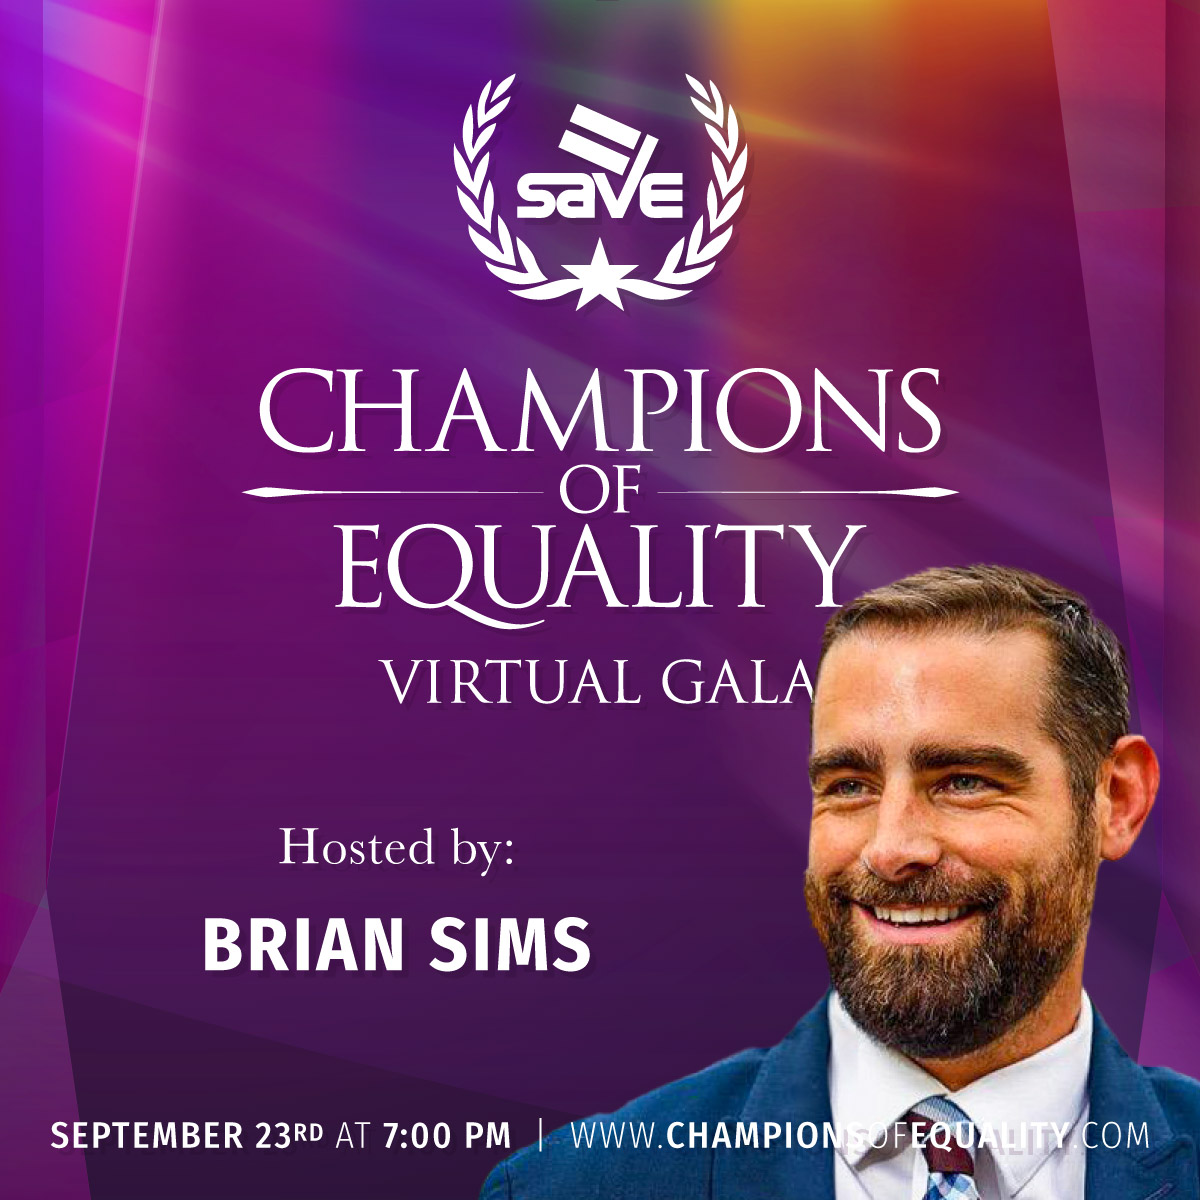 Hosted by Representative Brian Sims